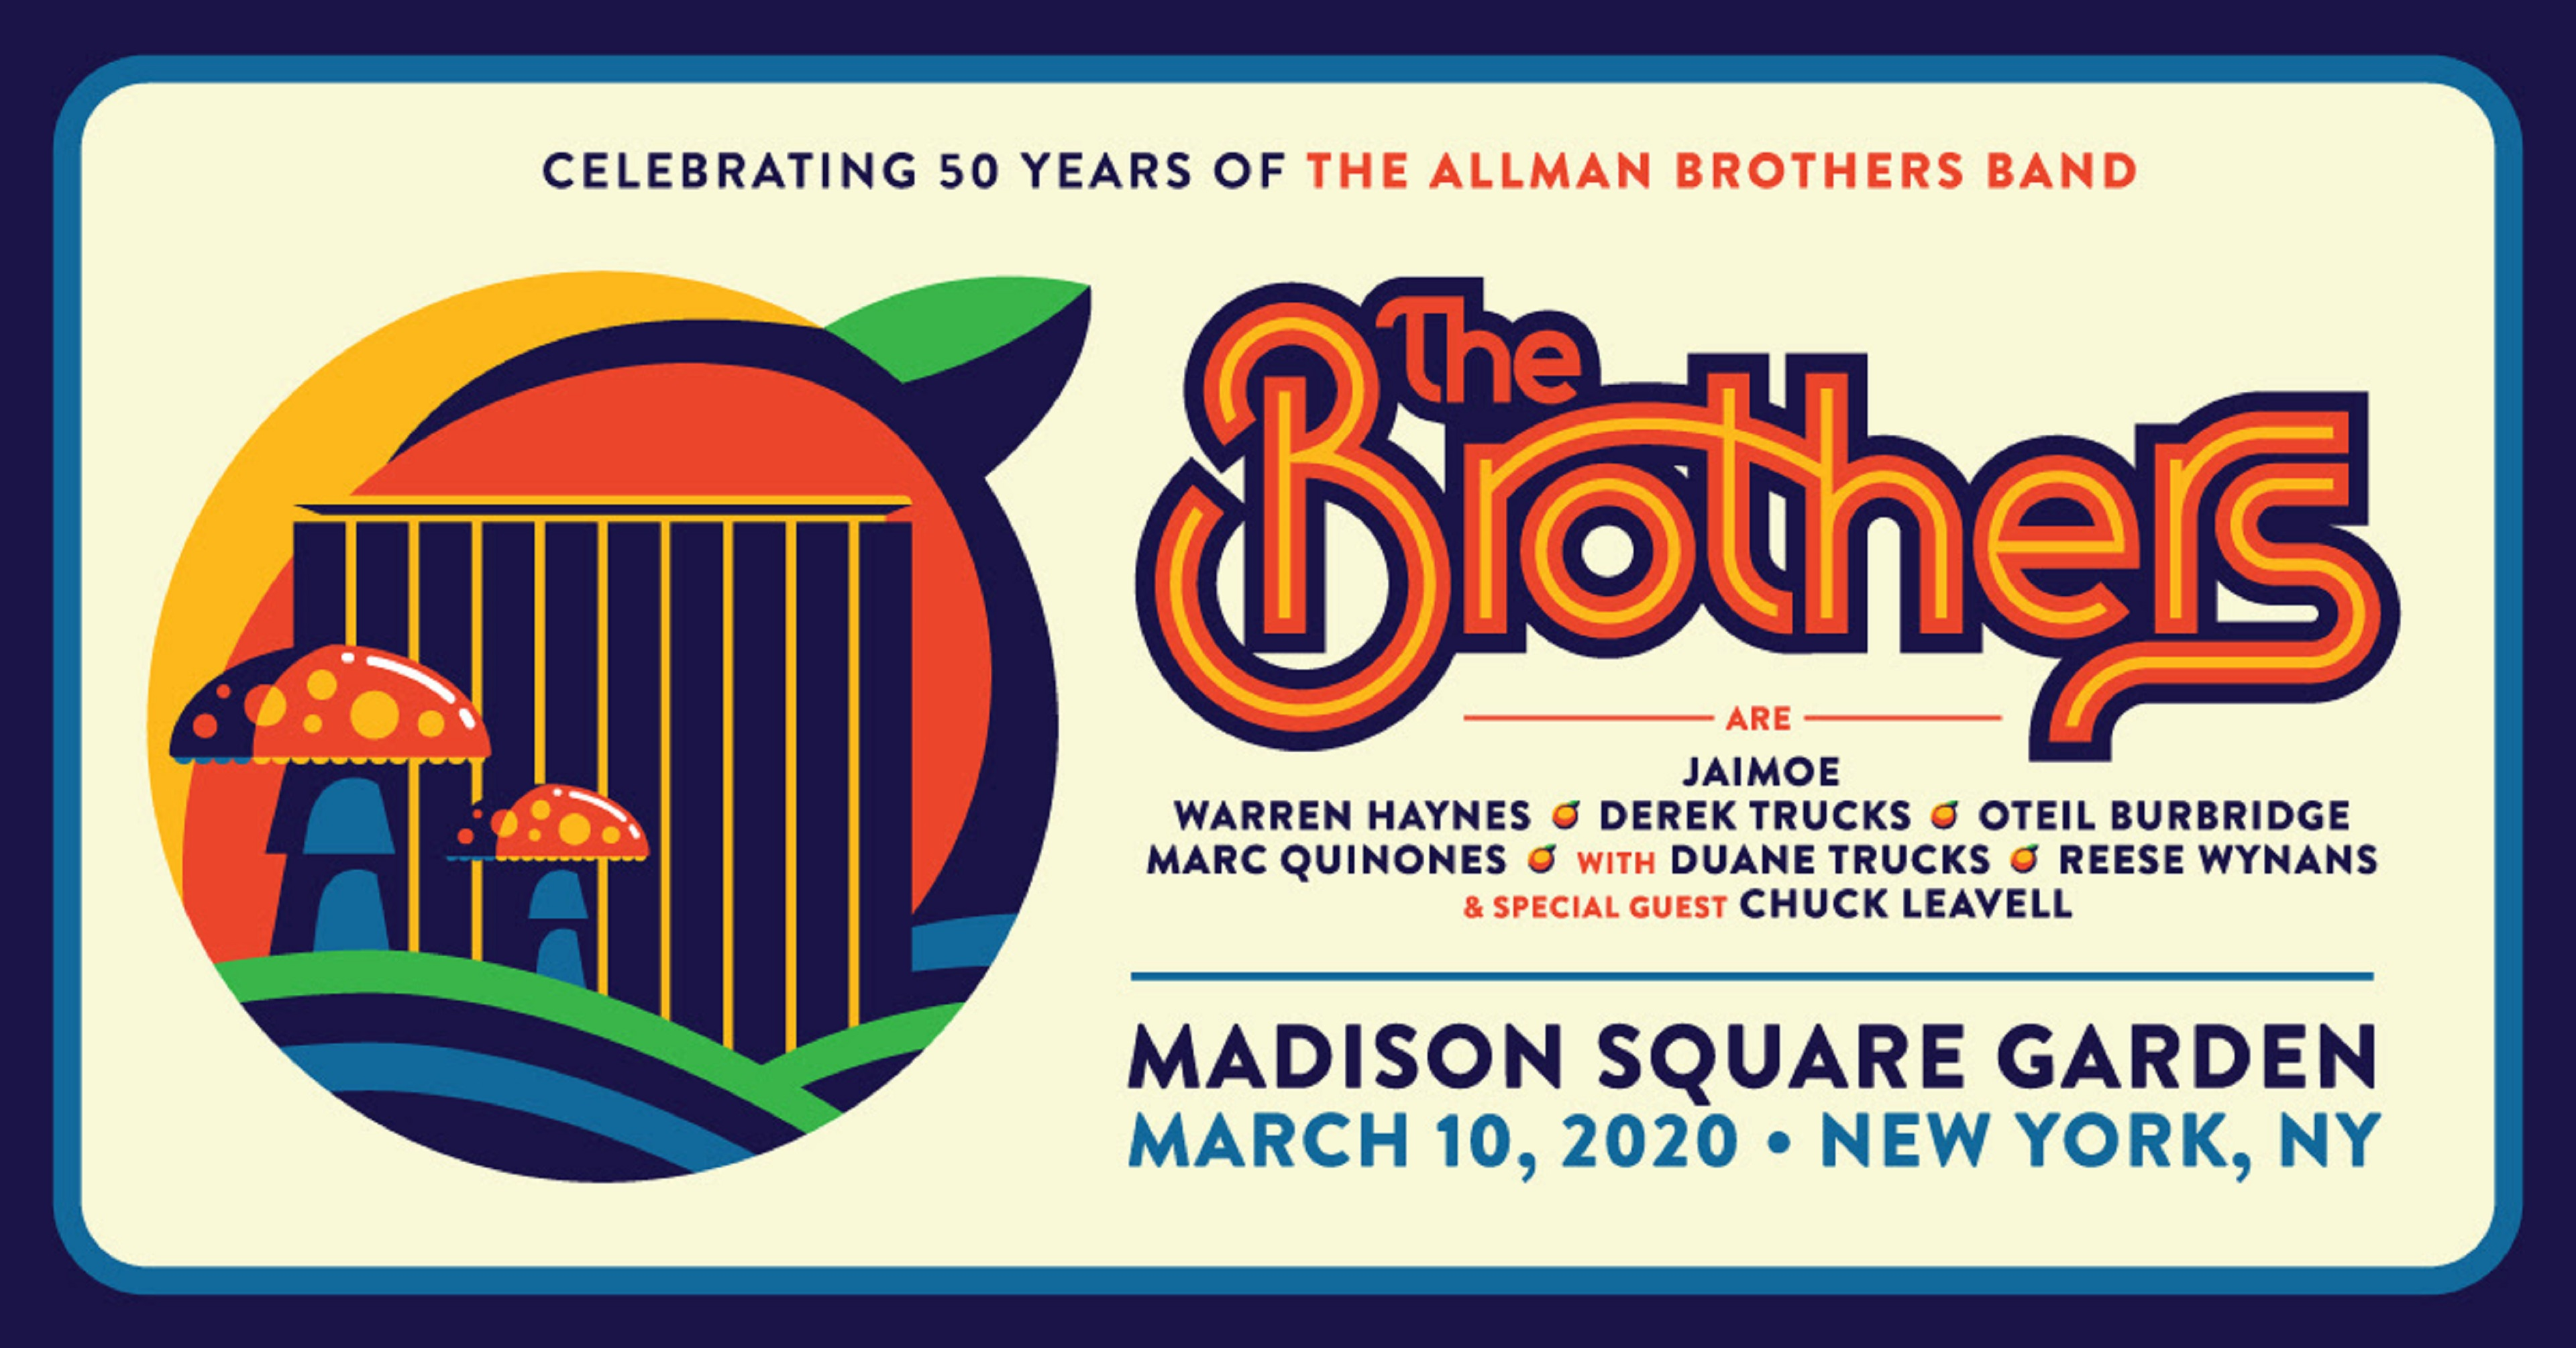 The Brothers' Sold-Out MSG Show on PPV via Nugs.net